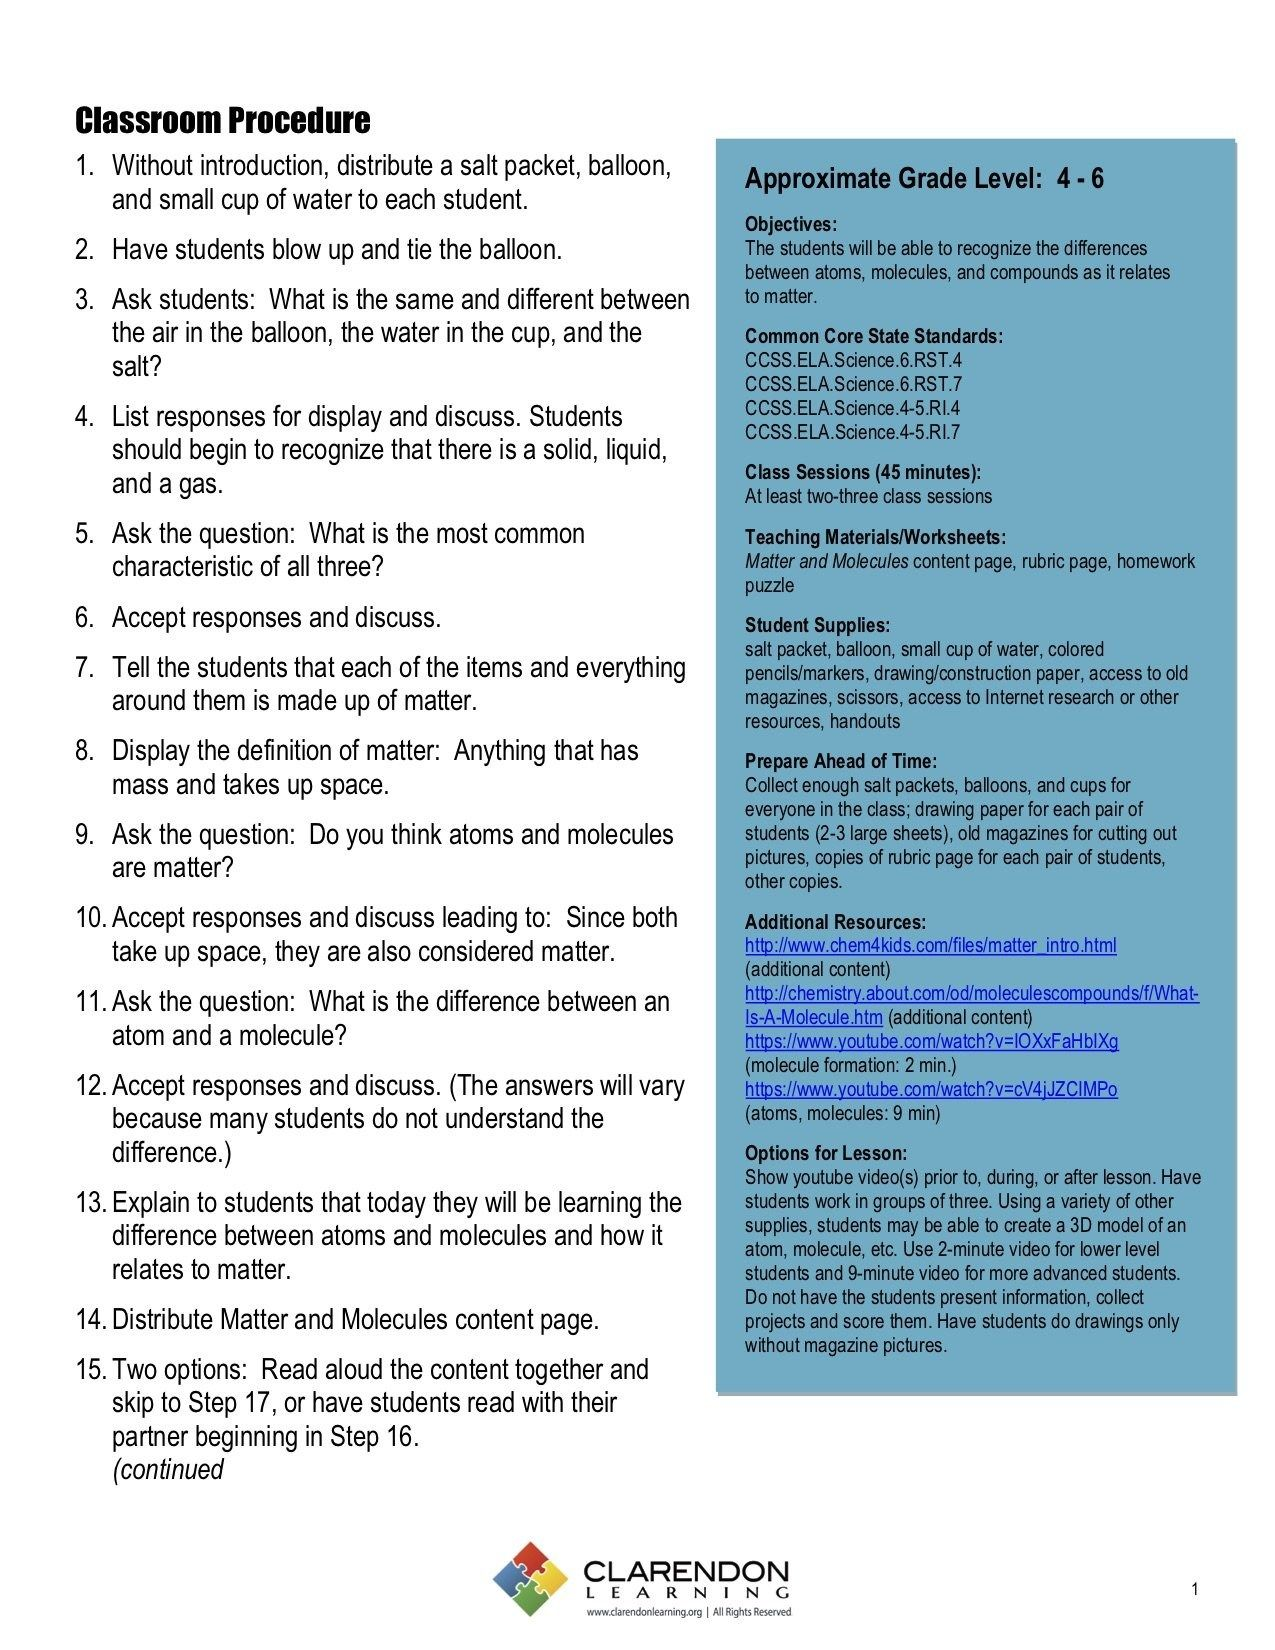 Common Core Worksheets 4th Grade - All About Worksheet   Common core math  worksheets [ 1650 x 1275 Pixel ]